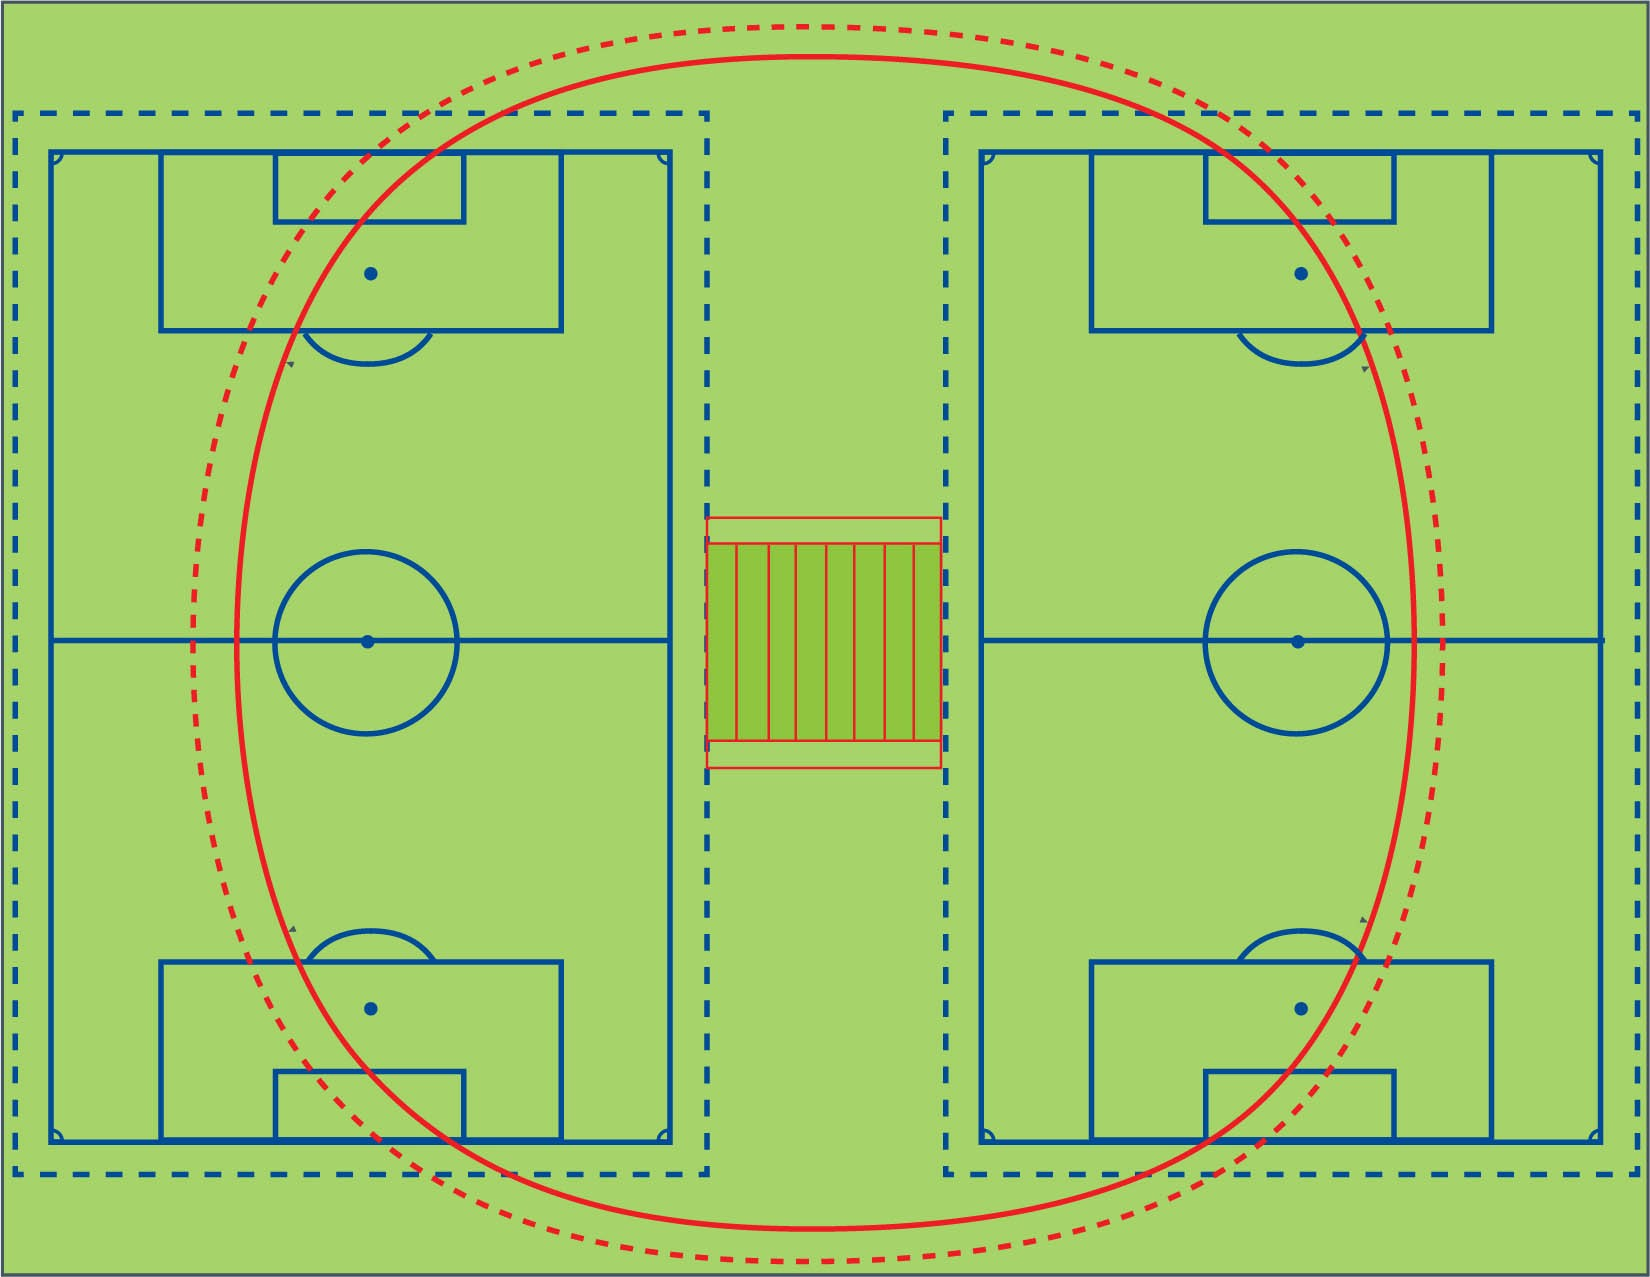 Cricket Field Diagram